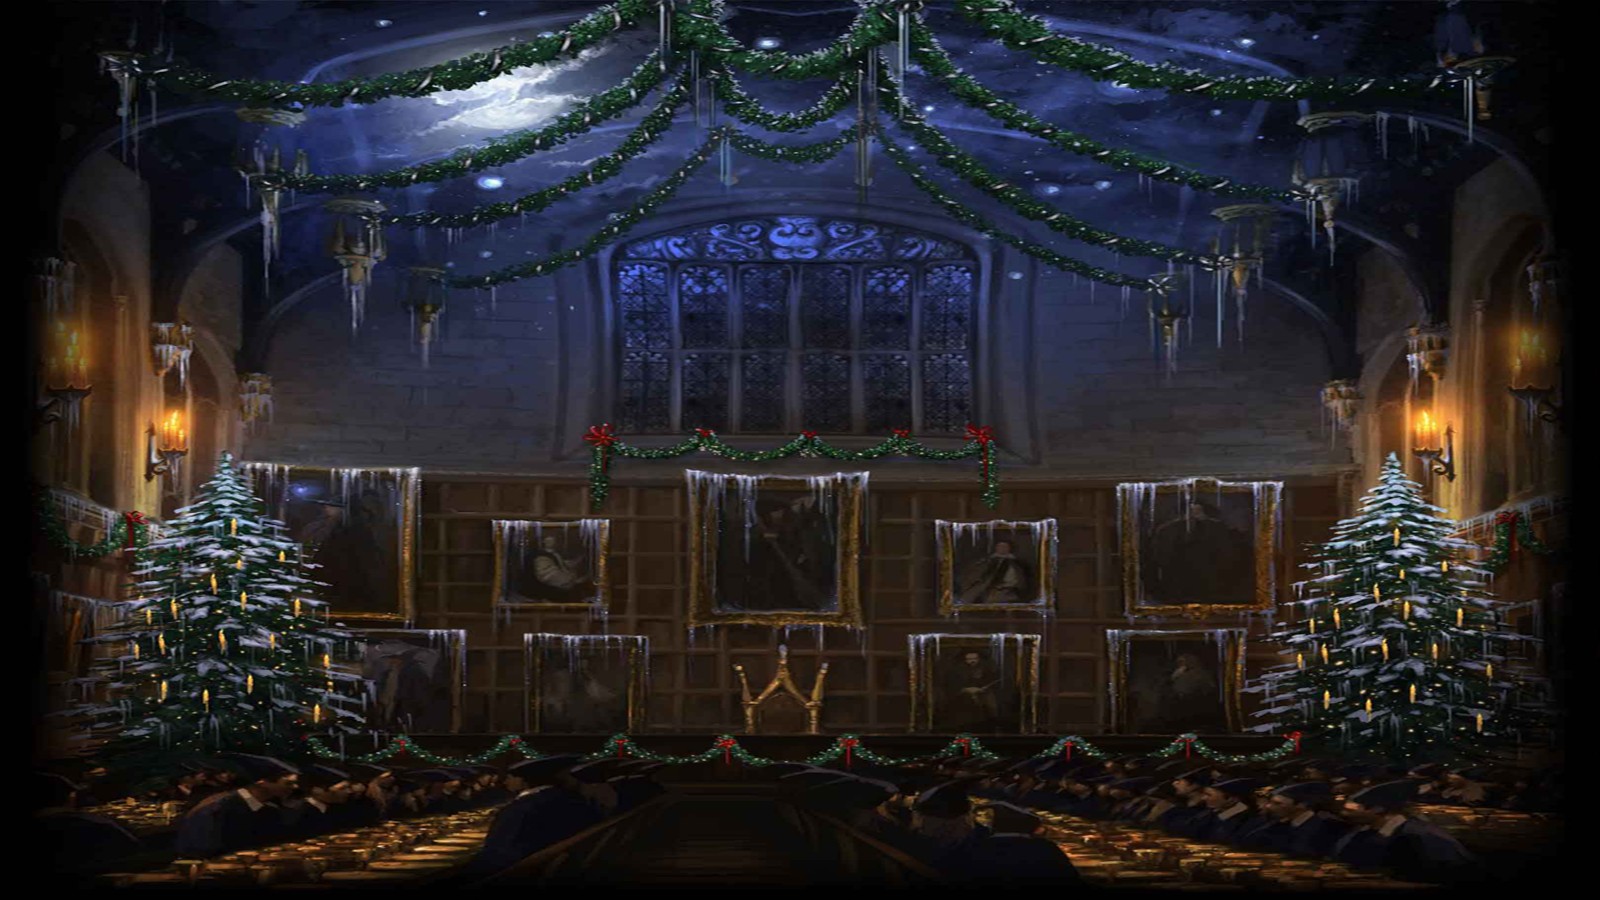 Harry Potter Christmas Wallpaper Hd.Pottermore Background Great Hall At Christmas 3 By Xxtayce